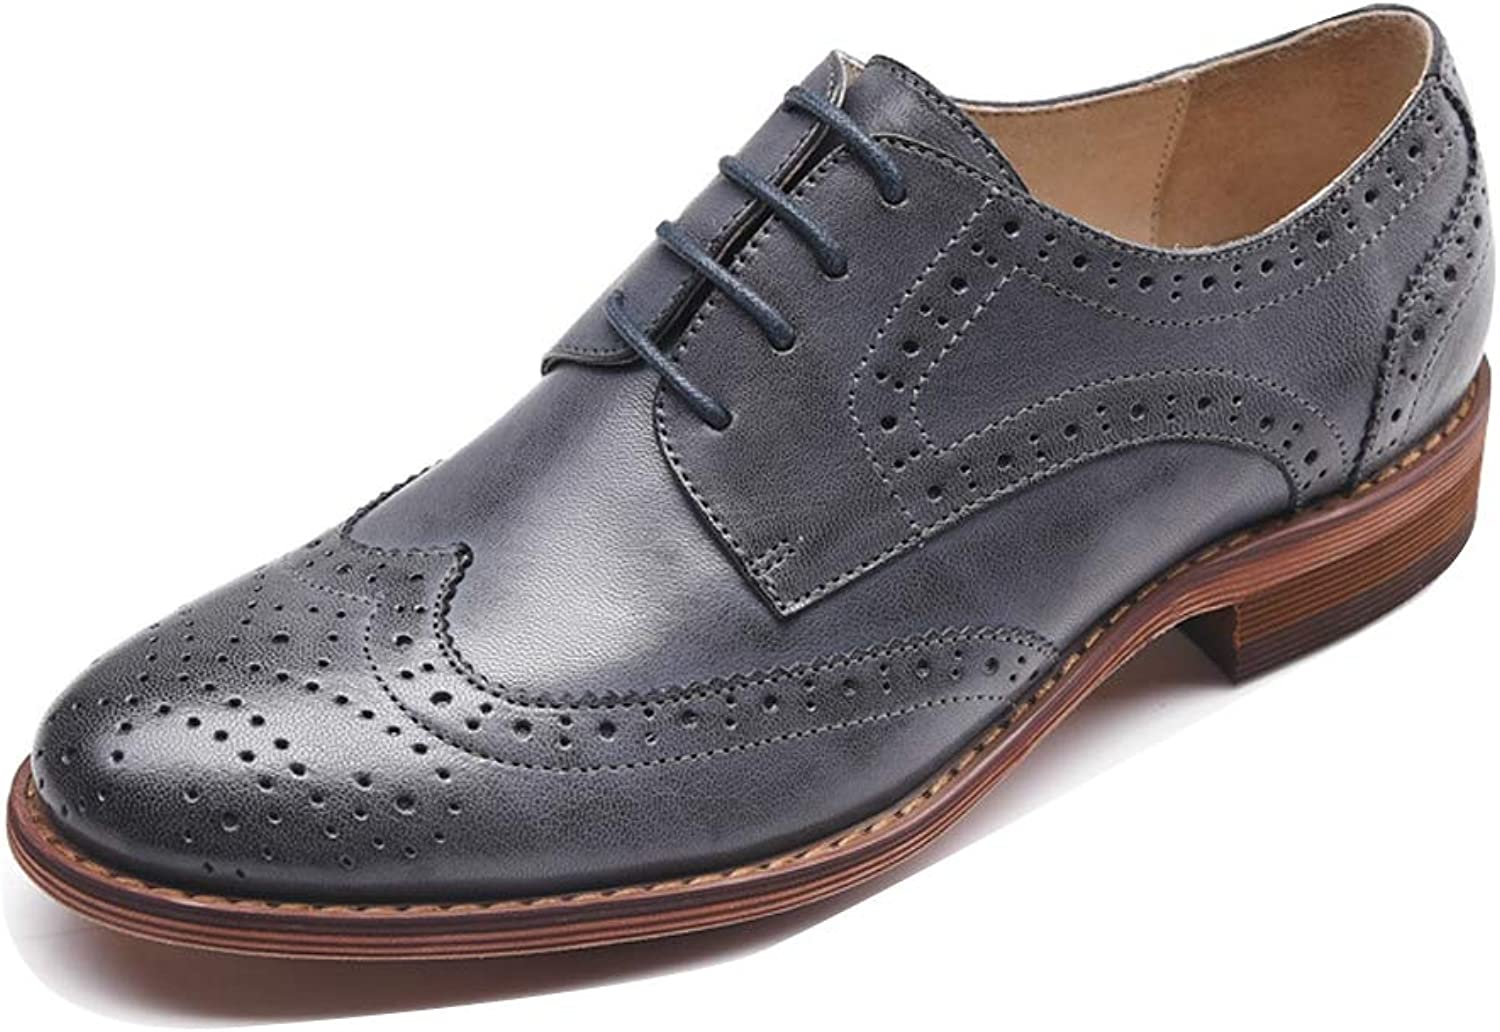 LIURUIJIA Leather Perforated Lace-up Oxfords shoes Vintage Oxford shoes Brogues YMNJX1-21025-01